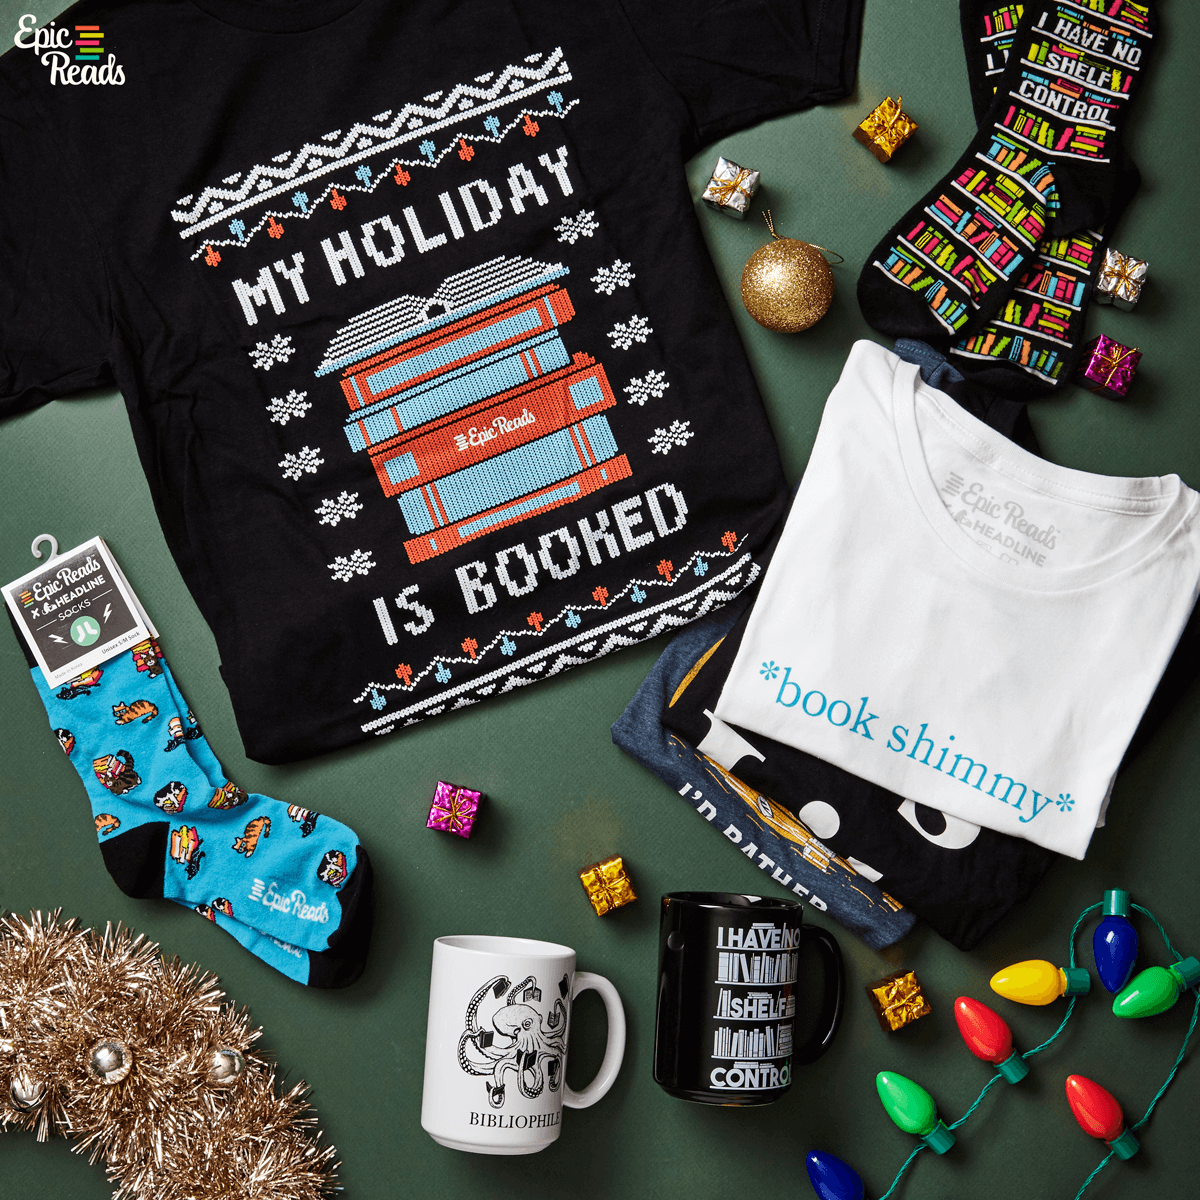 Epic Reads Gift Guide: Merch